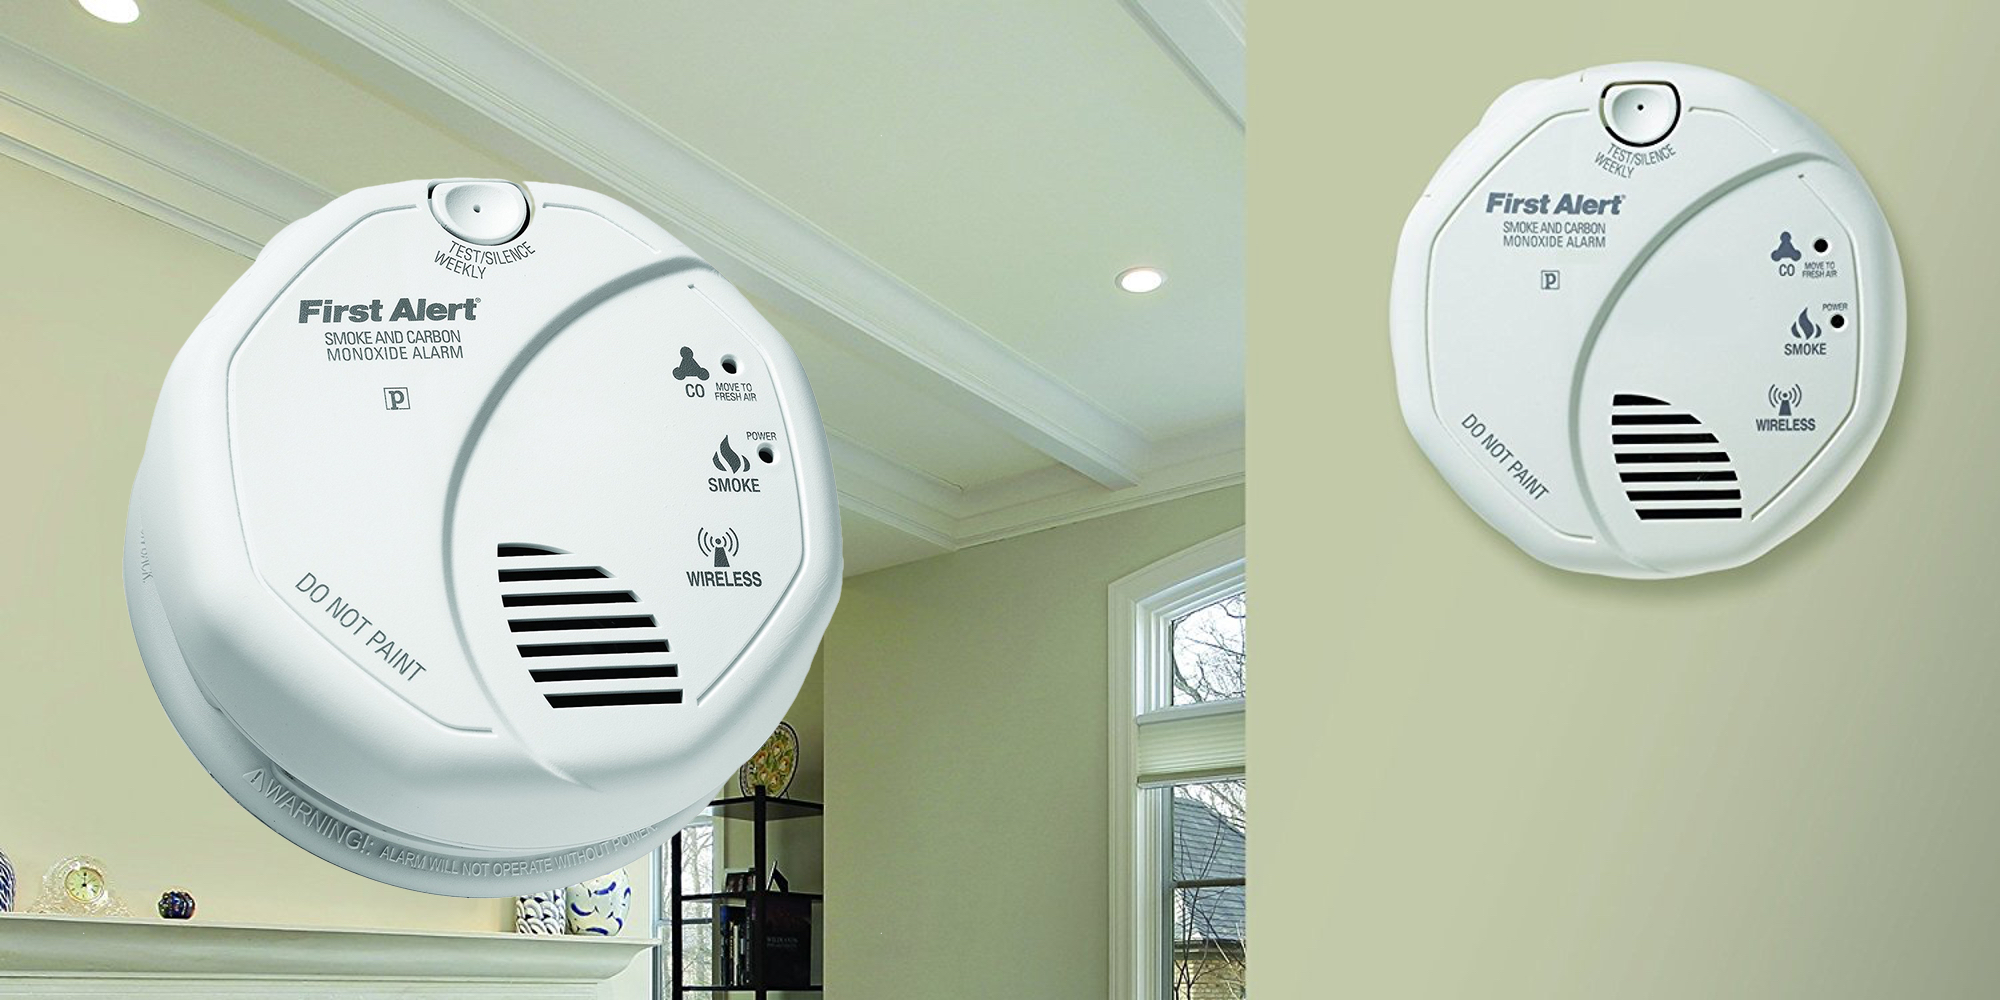 First Alert Z-Wave Smoke Detector & Carbon Monoxide Alarm hits all-time low at $33